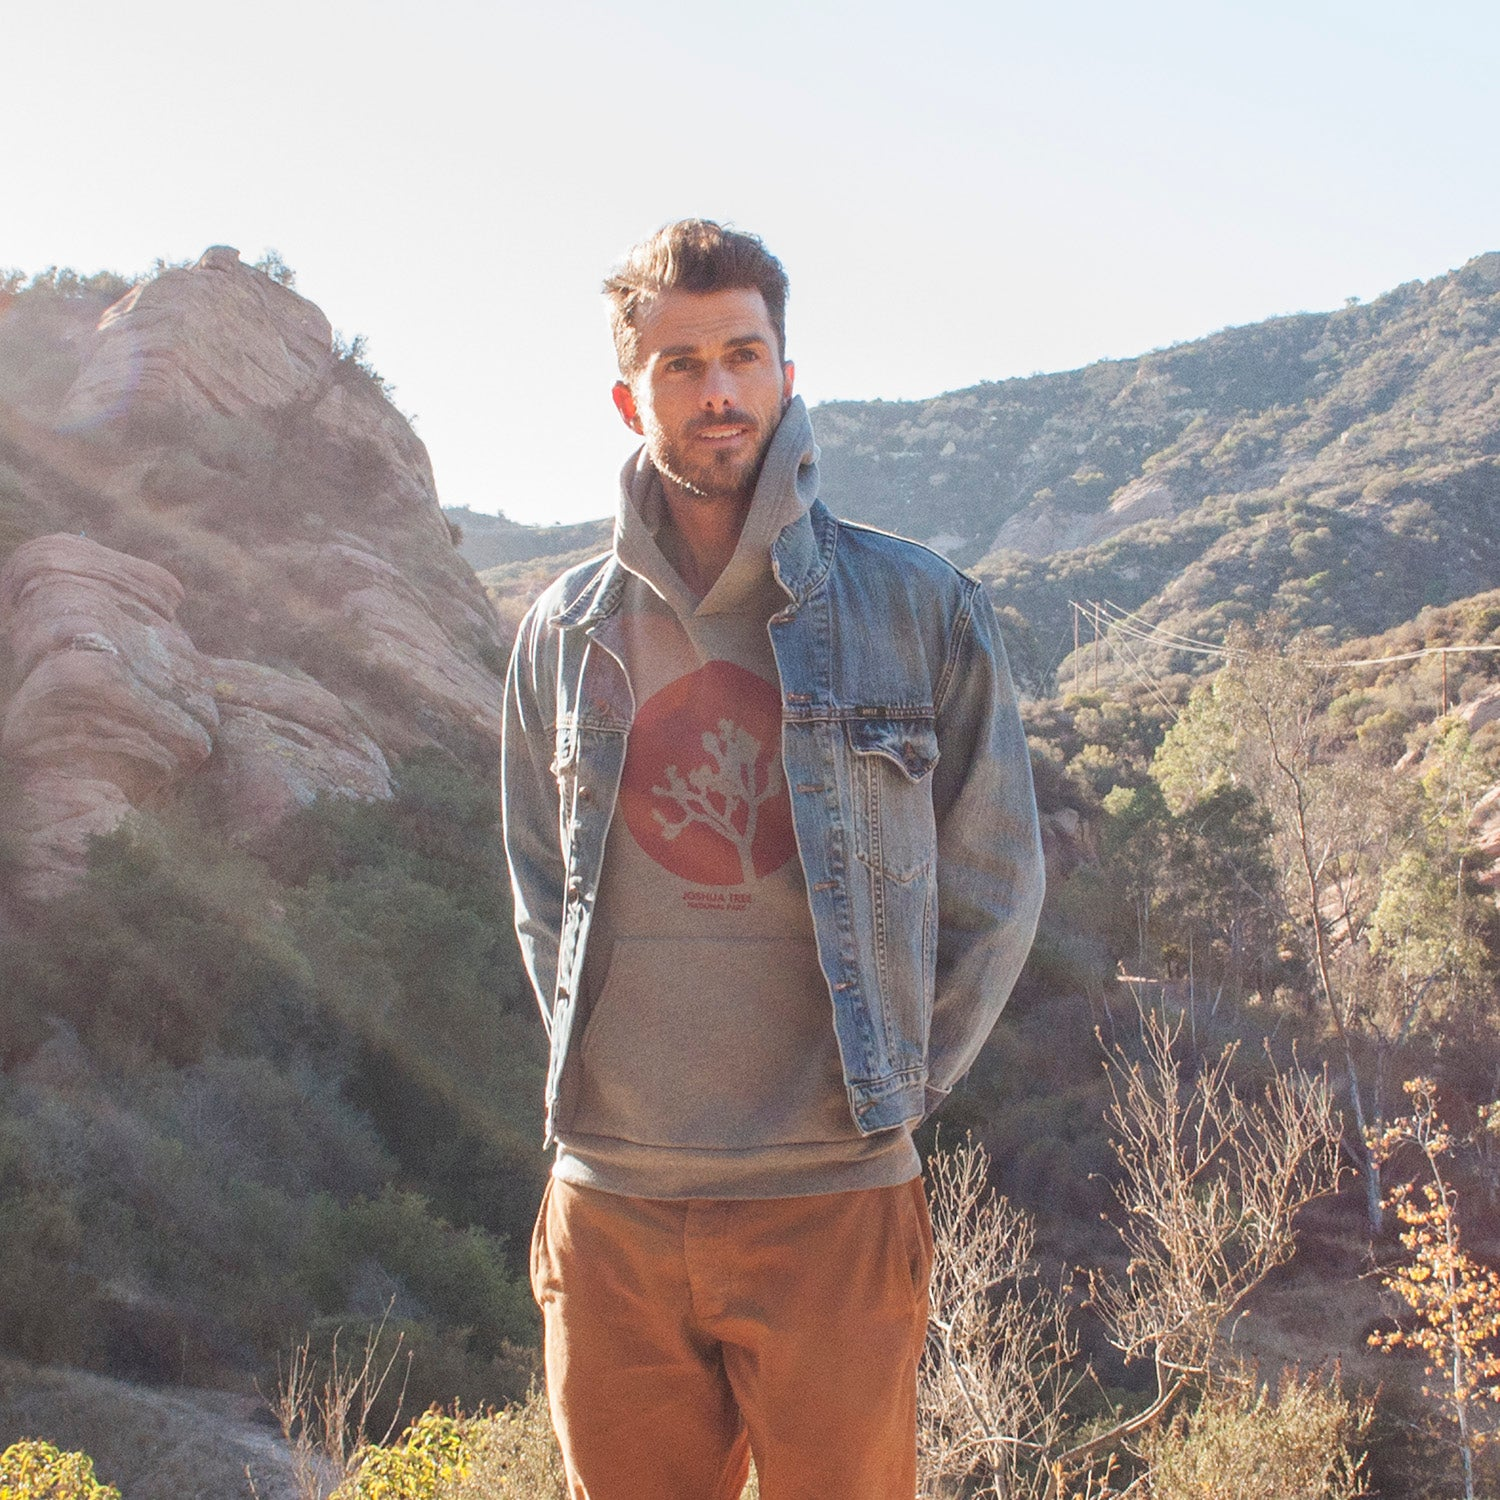 Joshua Tree Hoodie | Parks Project | National Parks Holiday Gift Guide